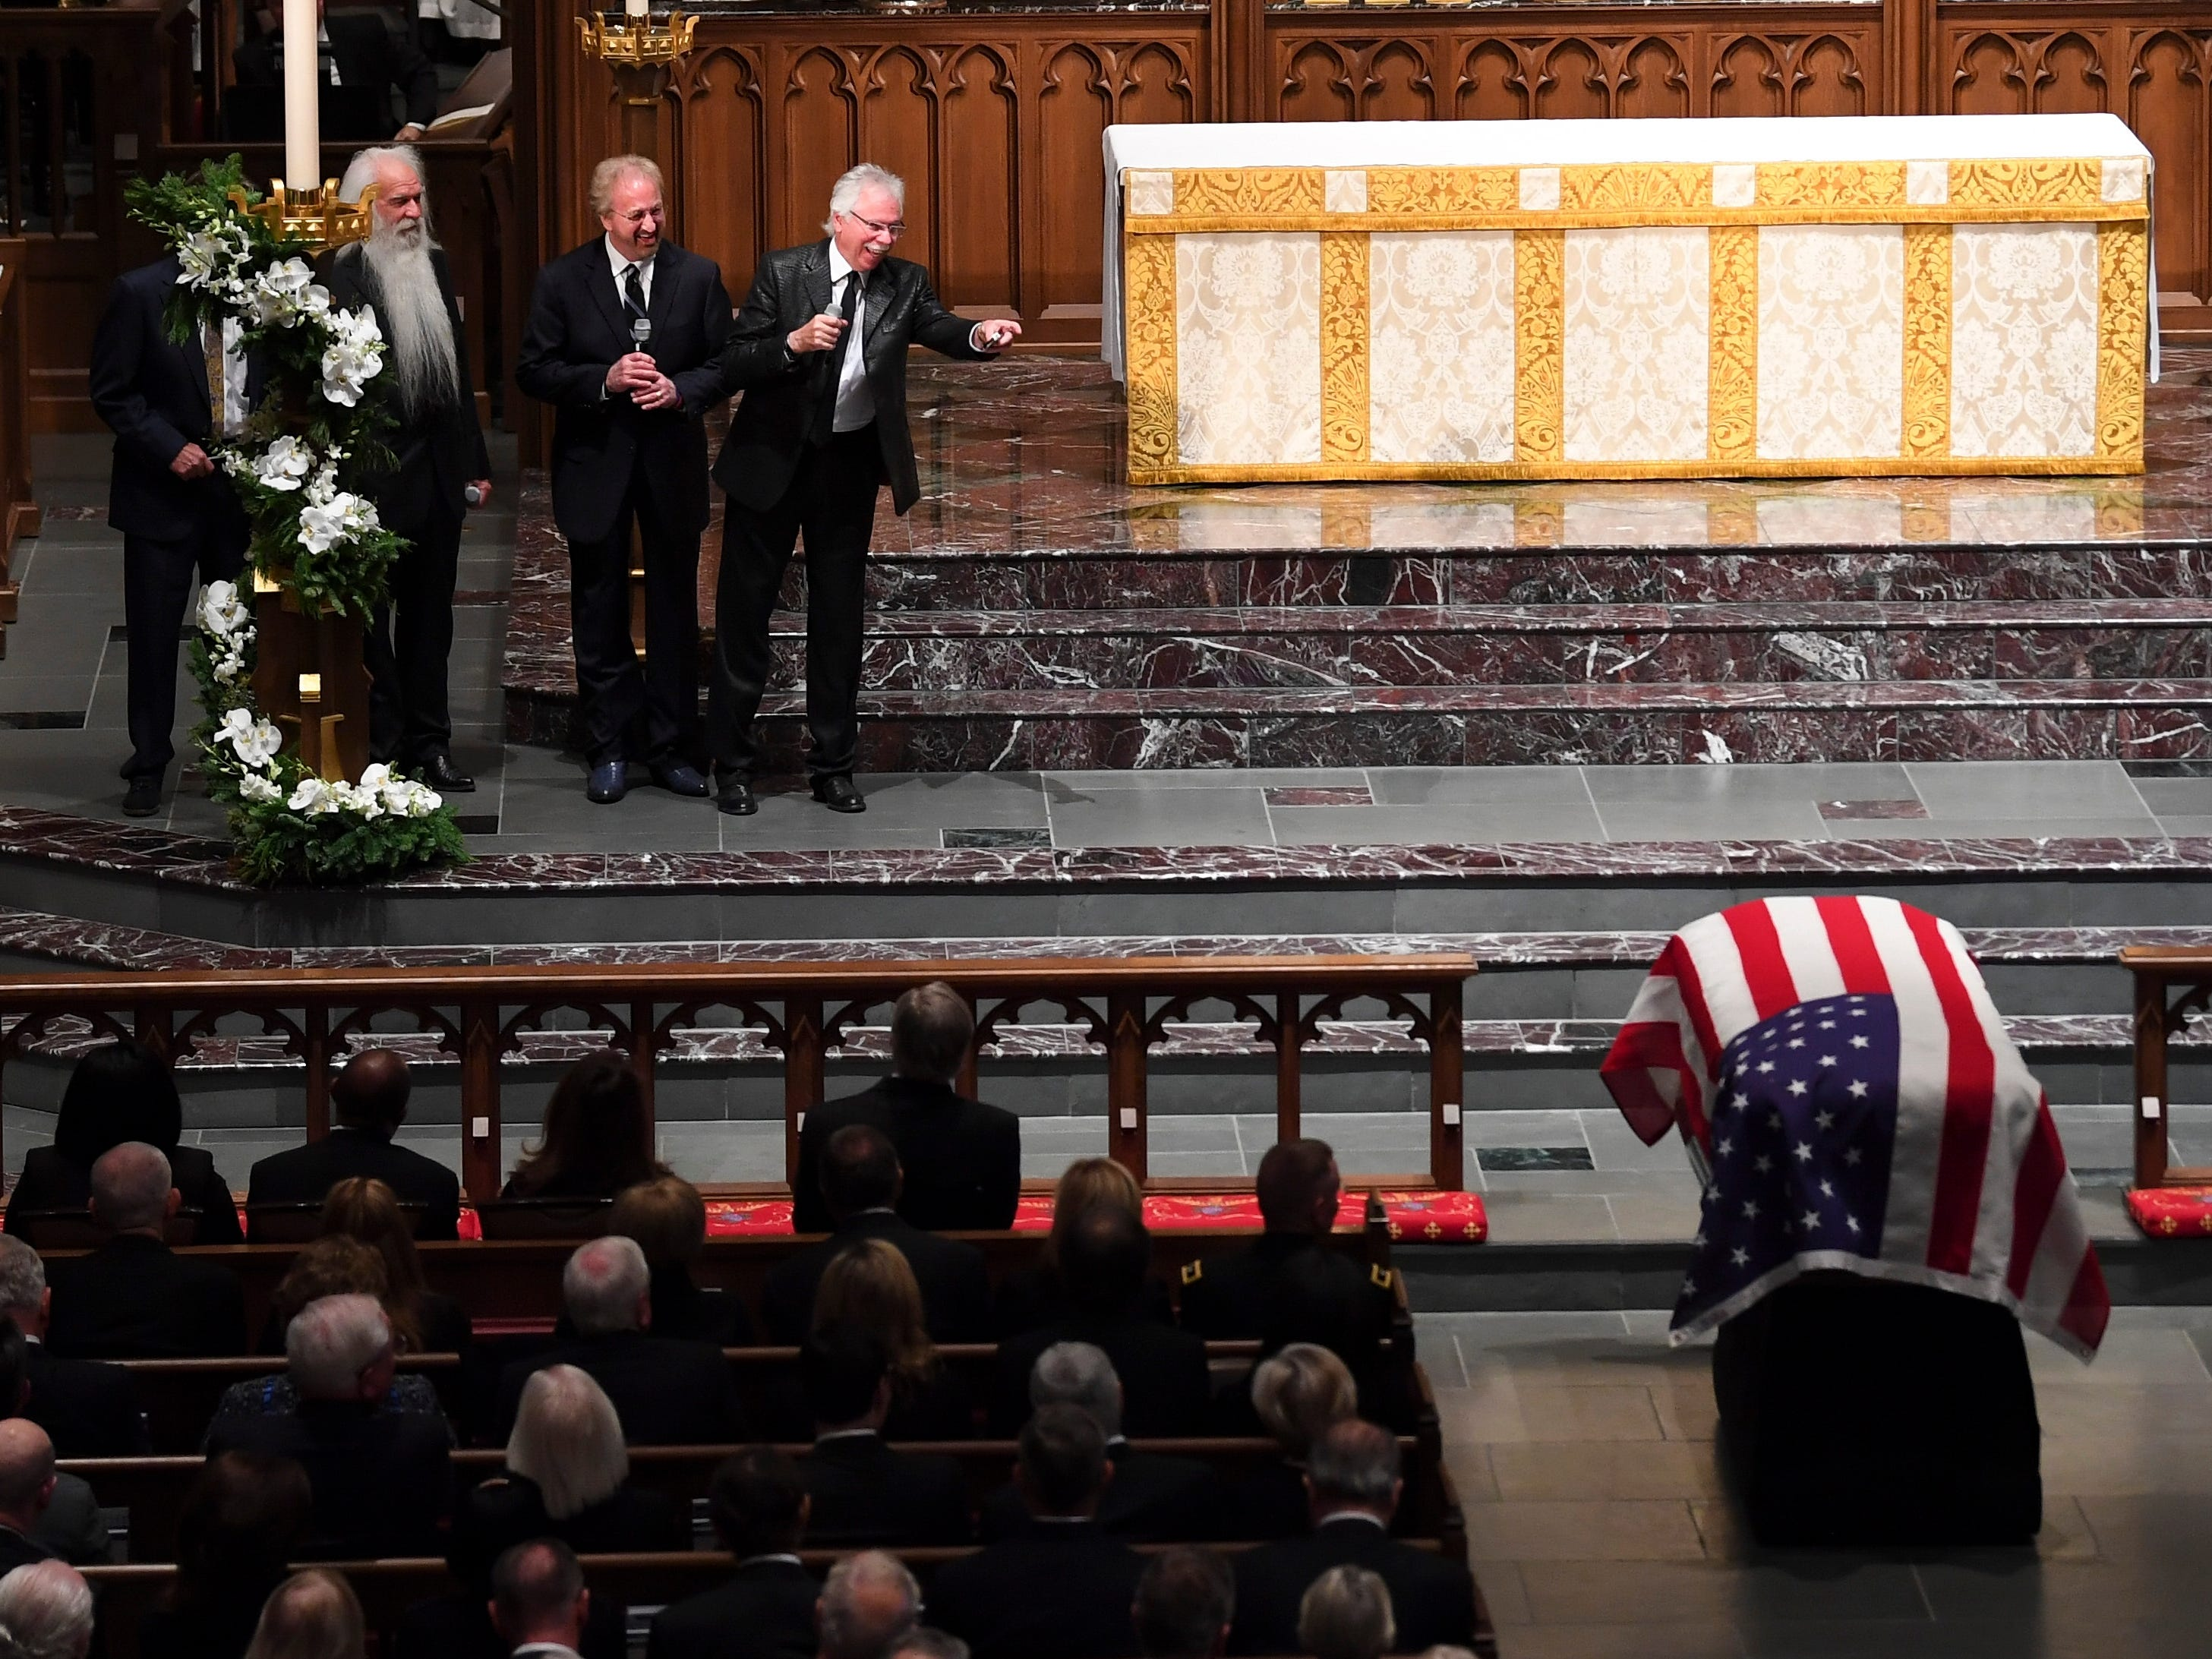 The Oak Ridge Boys appear at the funeral service for former President George H.W. Bush at St. Martin's Episcopal Church in Houston, Thursday, Dec. 6, 2018.